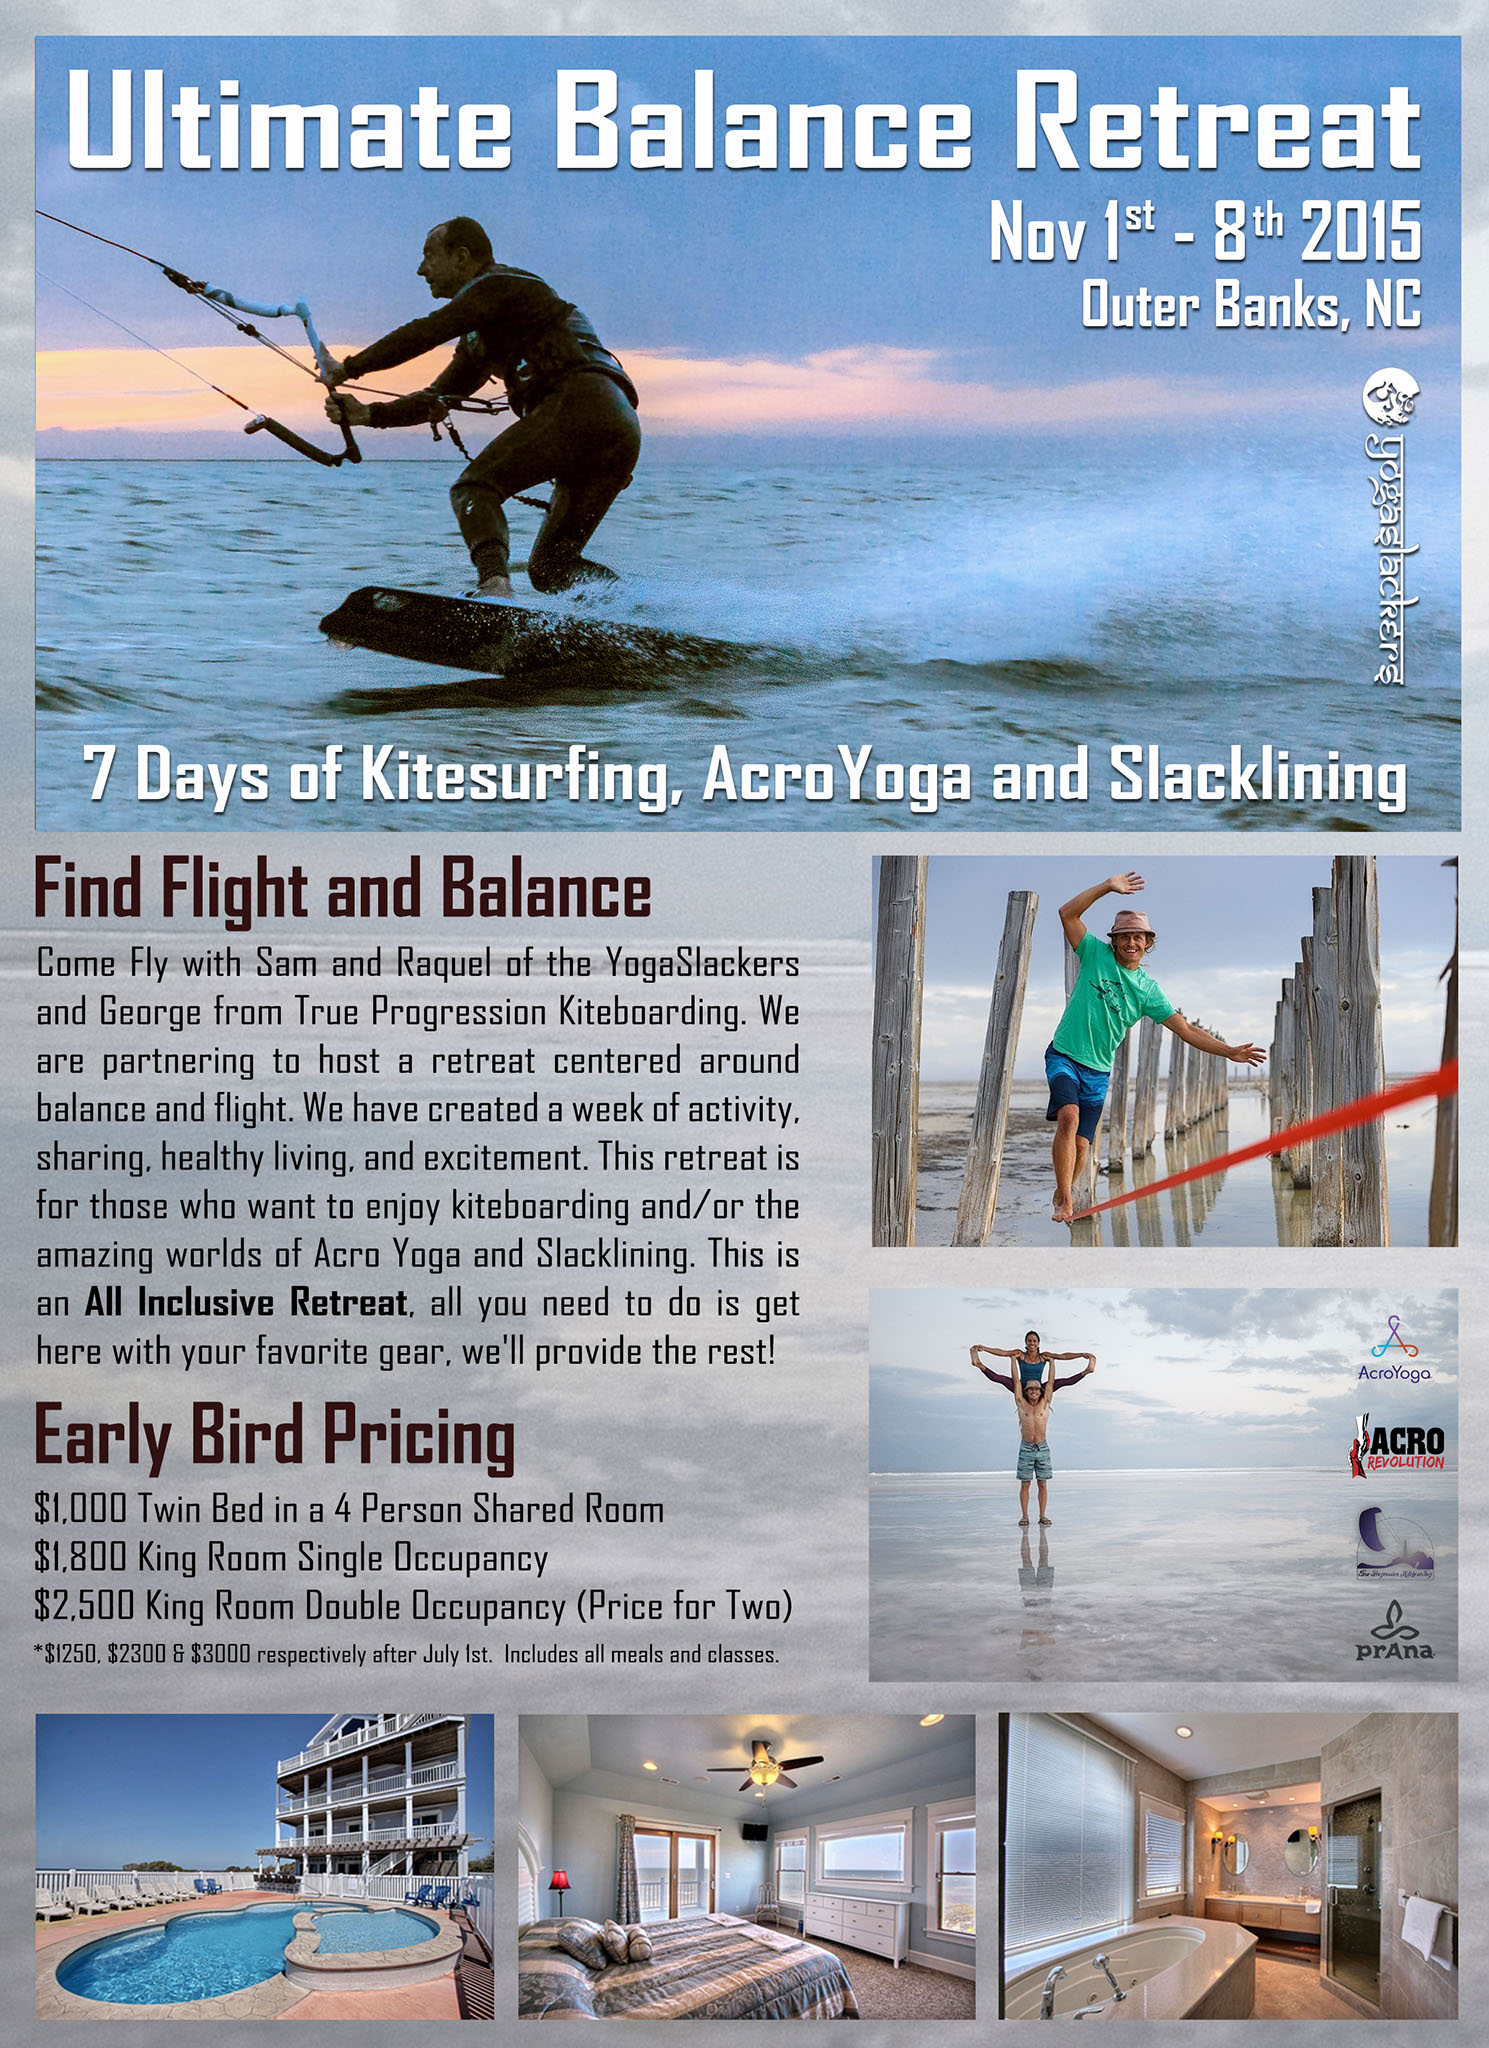 Ultimate Balance Retreat Flyer Poster True Progression Kiteboarding George Pare YogaSlackers Sam Raquel Gourmet in a Pinch Cape Hatteras 2015